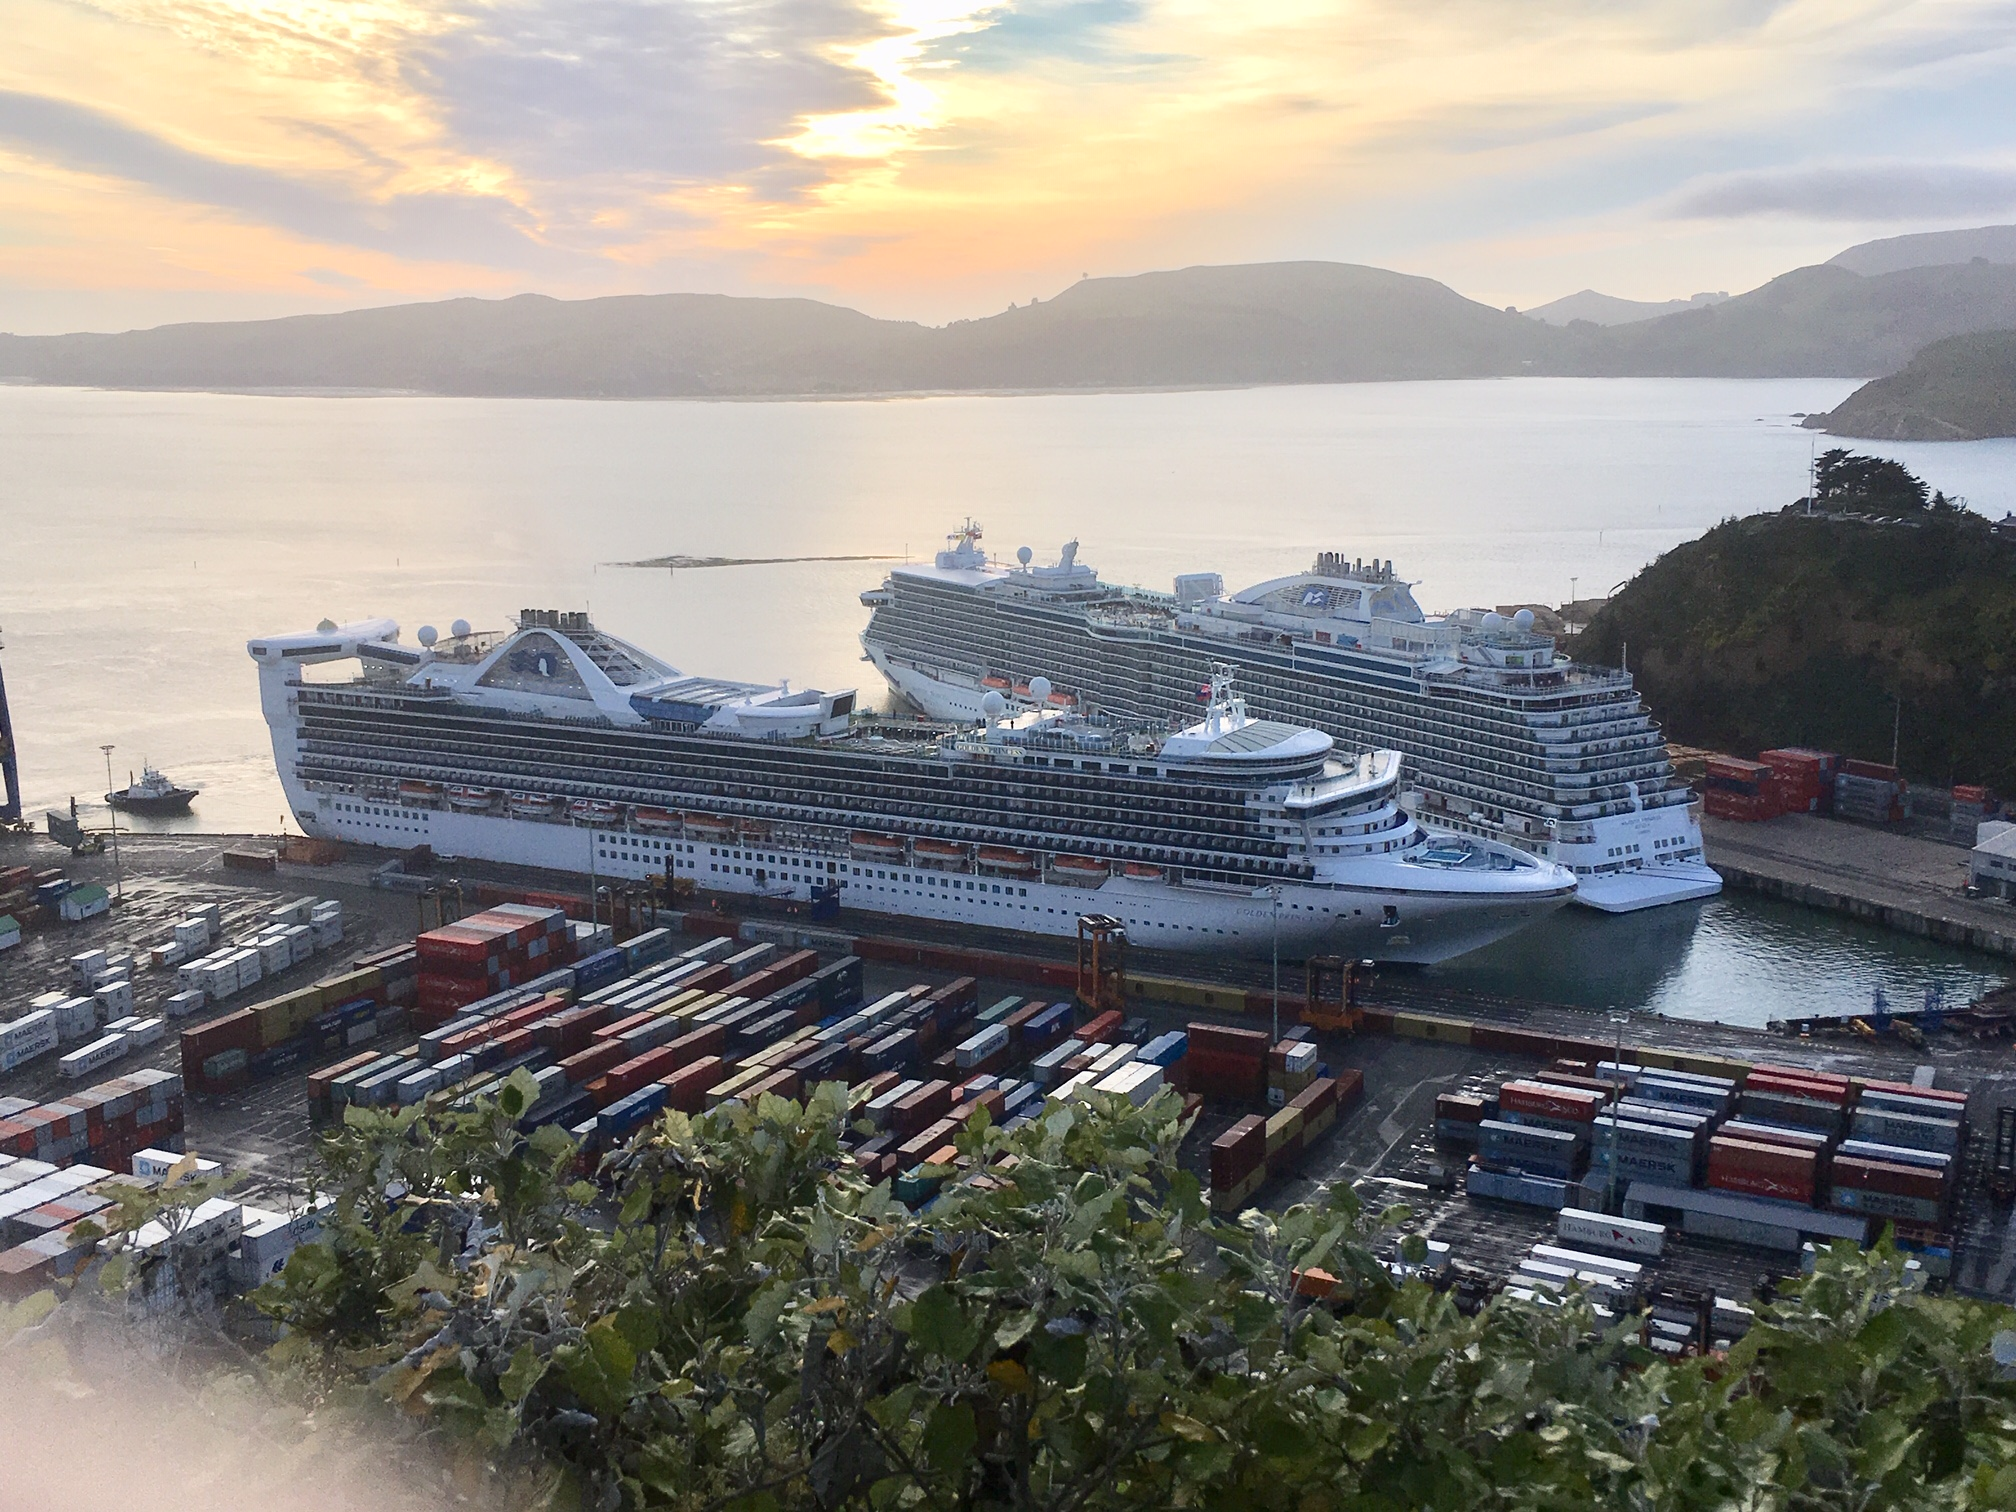 Cruise ships Majestic Princess and Golden Princess in Port Chalmers. Photo Stephen Jaquiery